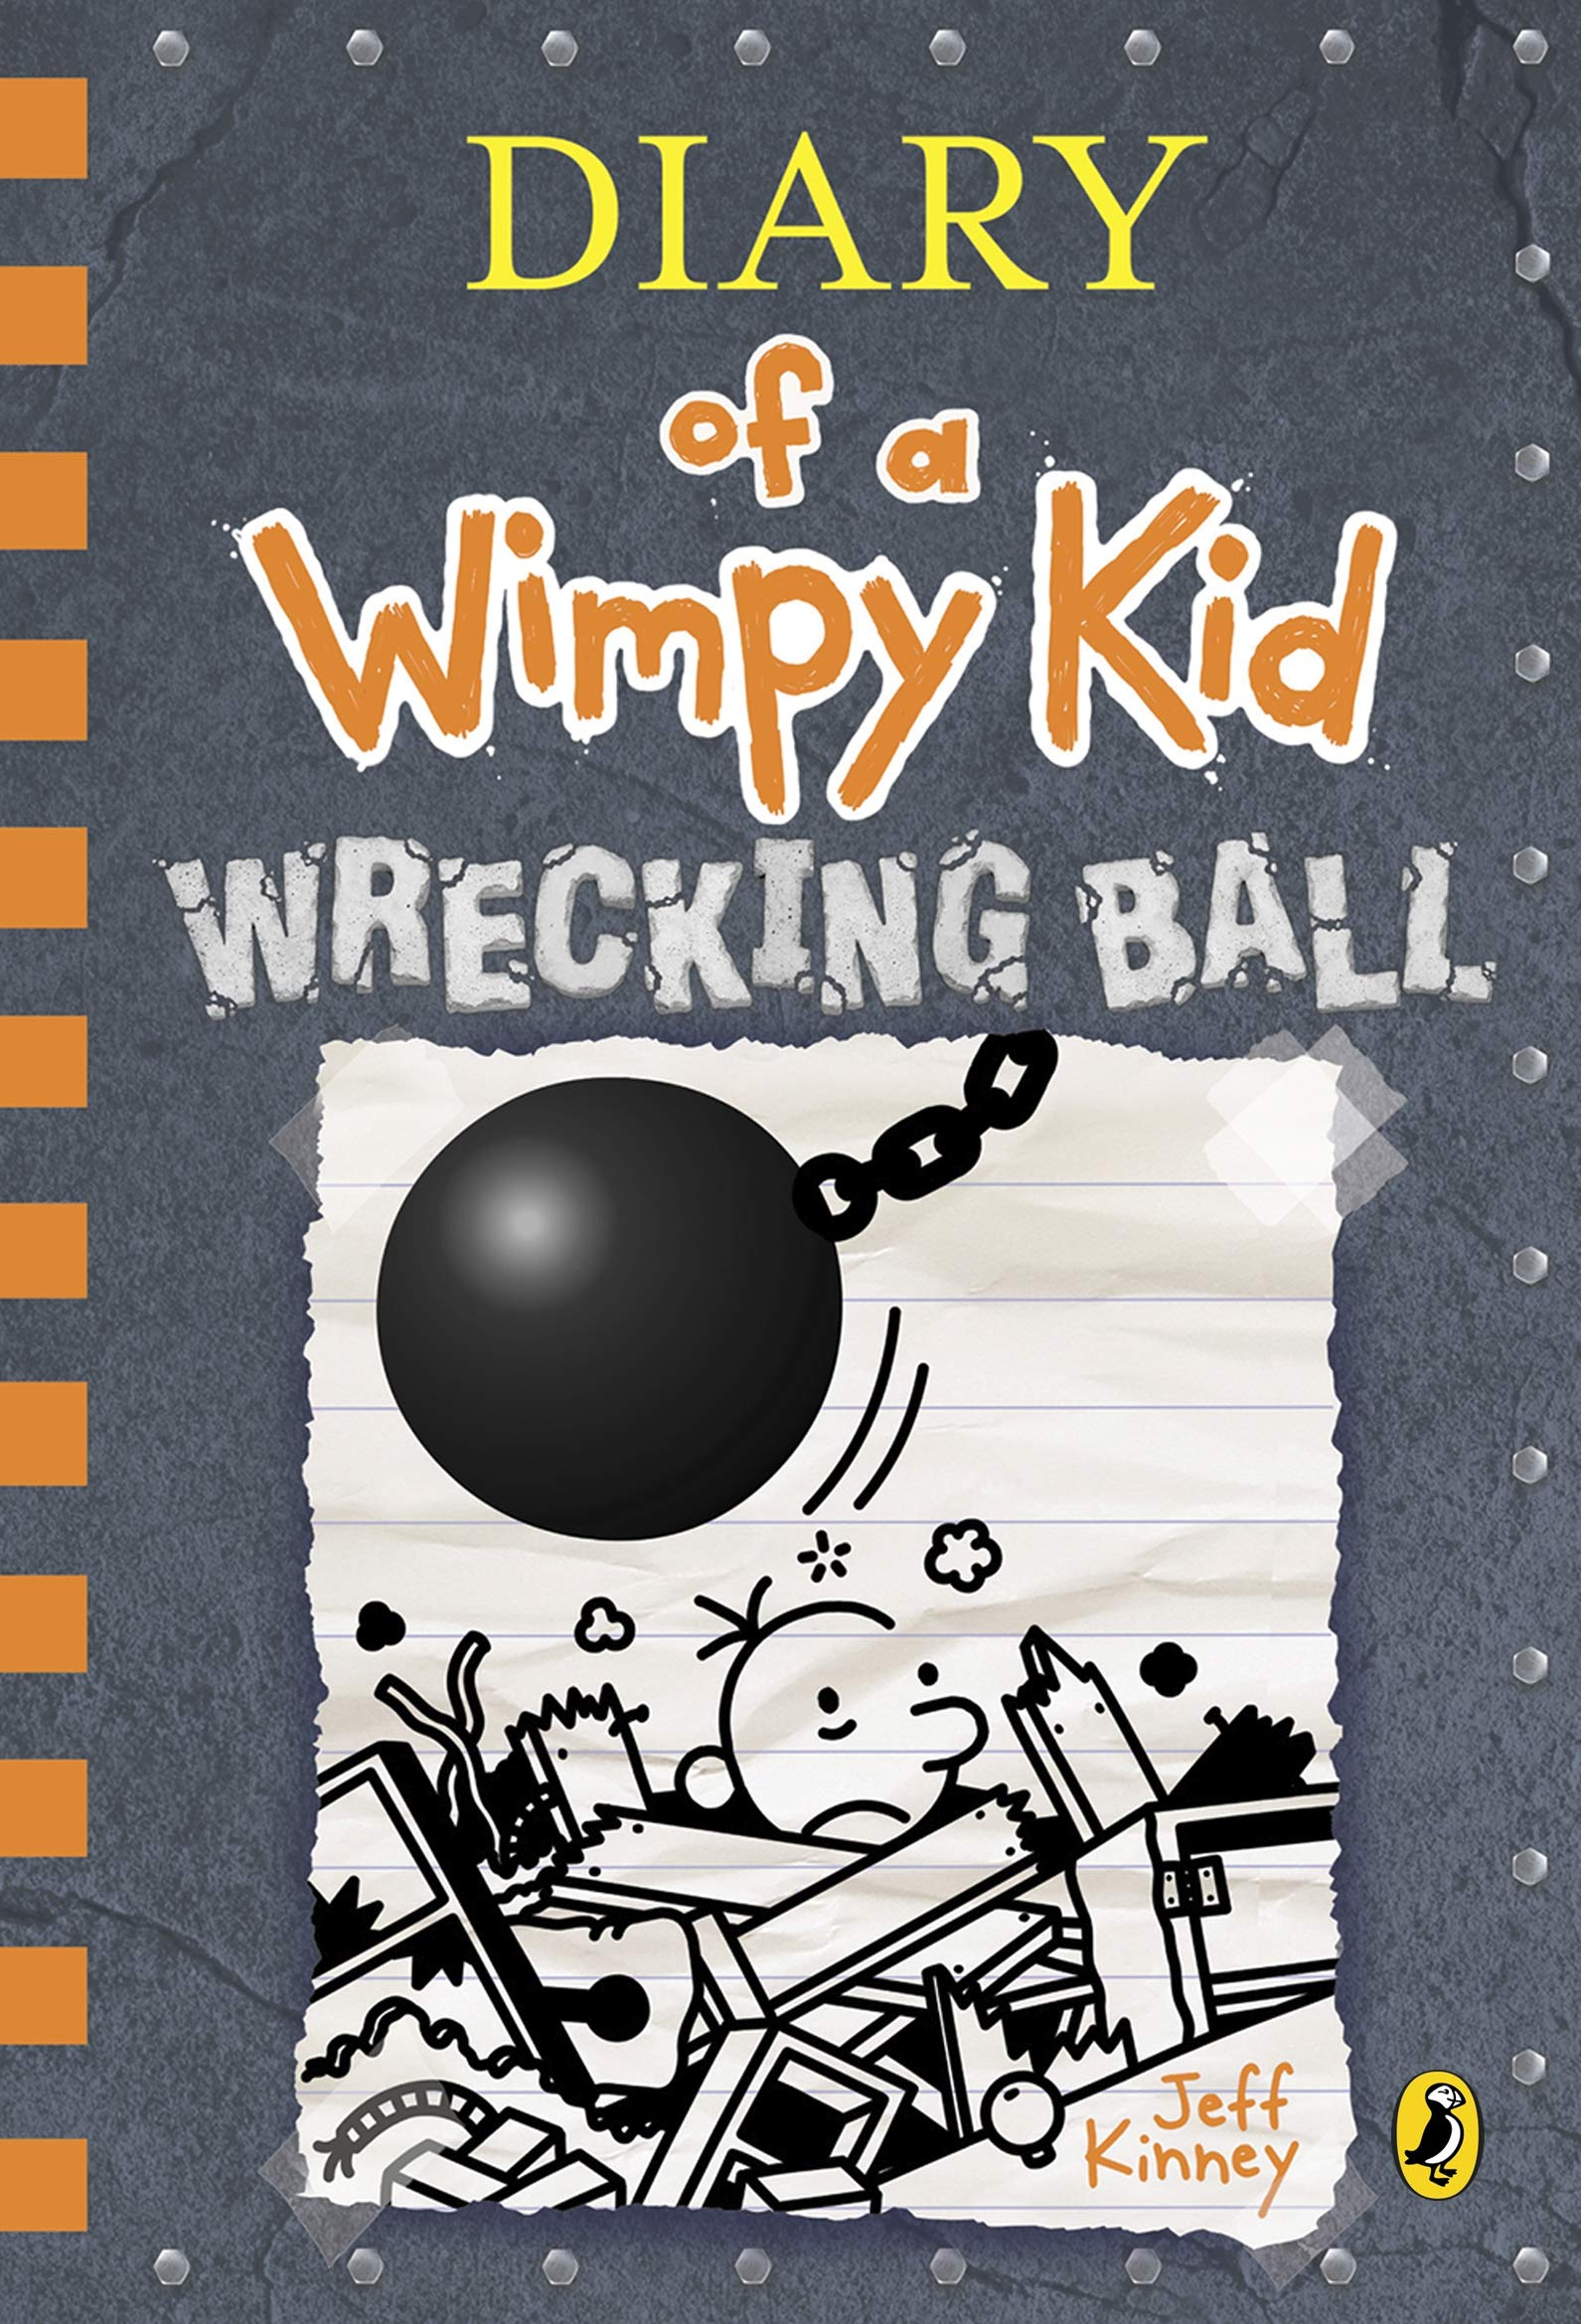 DIARY OF A WIMPY KID - WRECKING BALL - 9780241412039